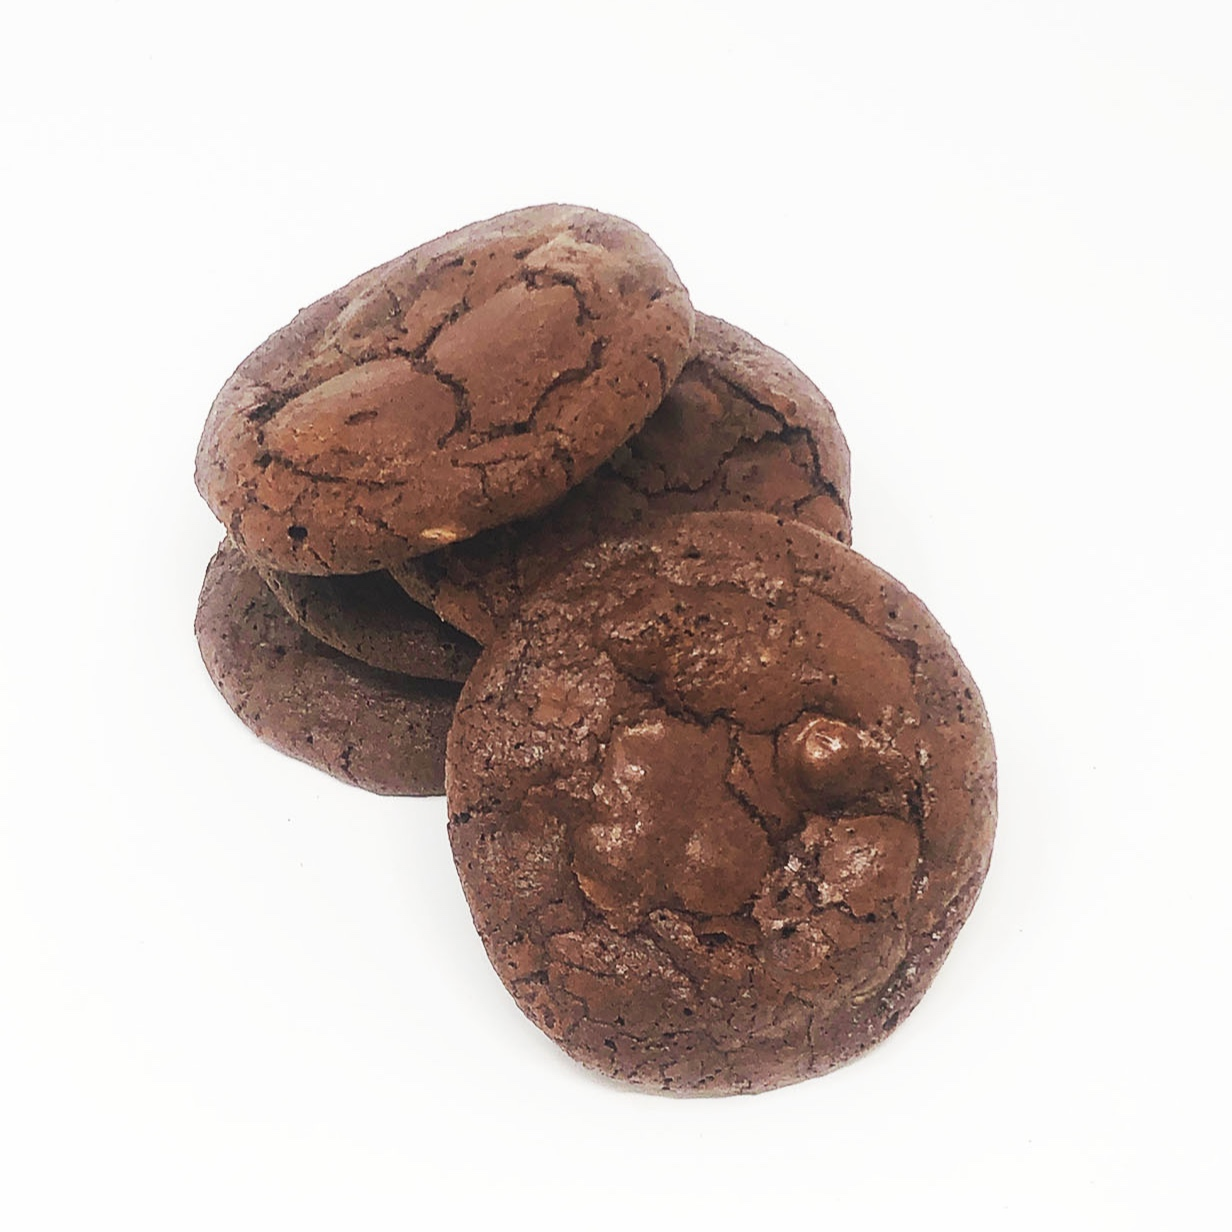 BELGIAN CHOCOLATE BROWNIE COOKIE - $1.25 each